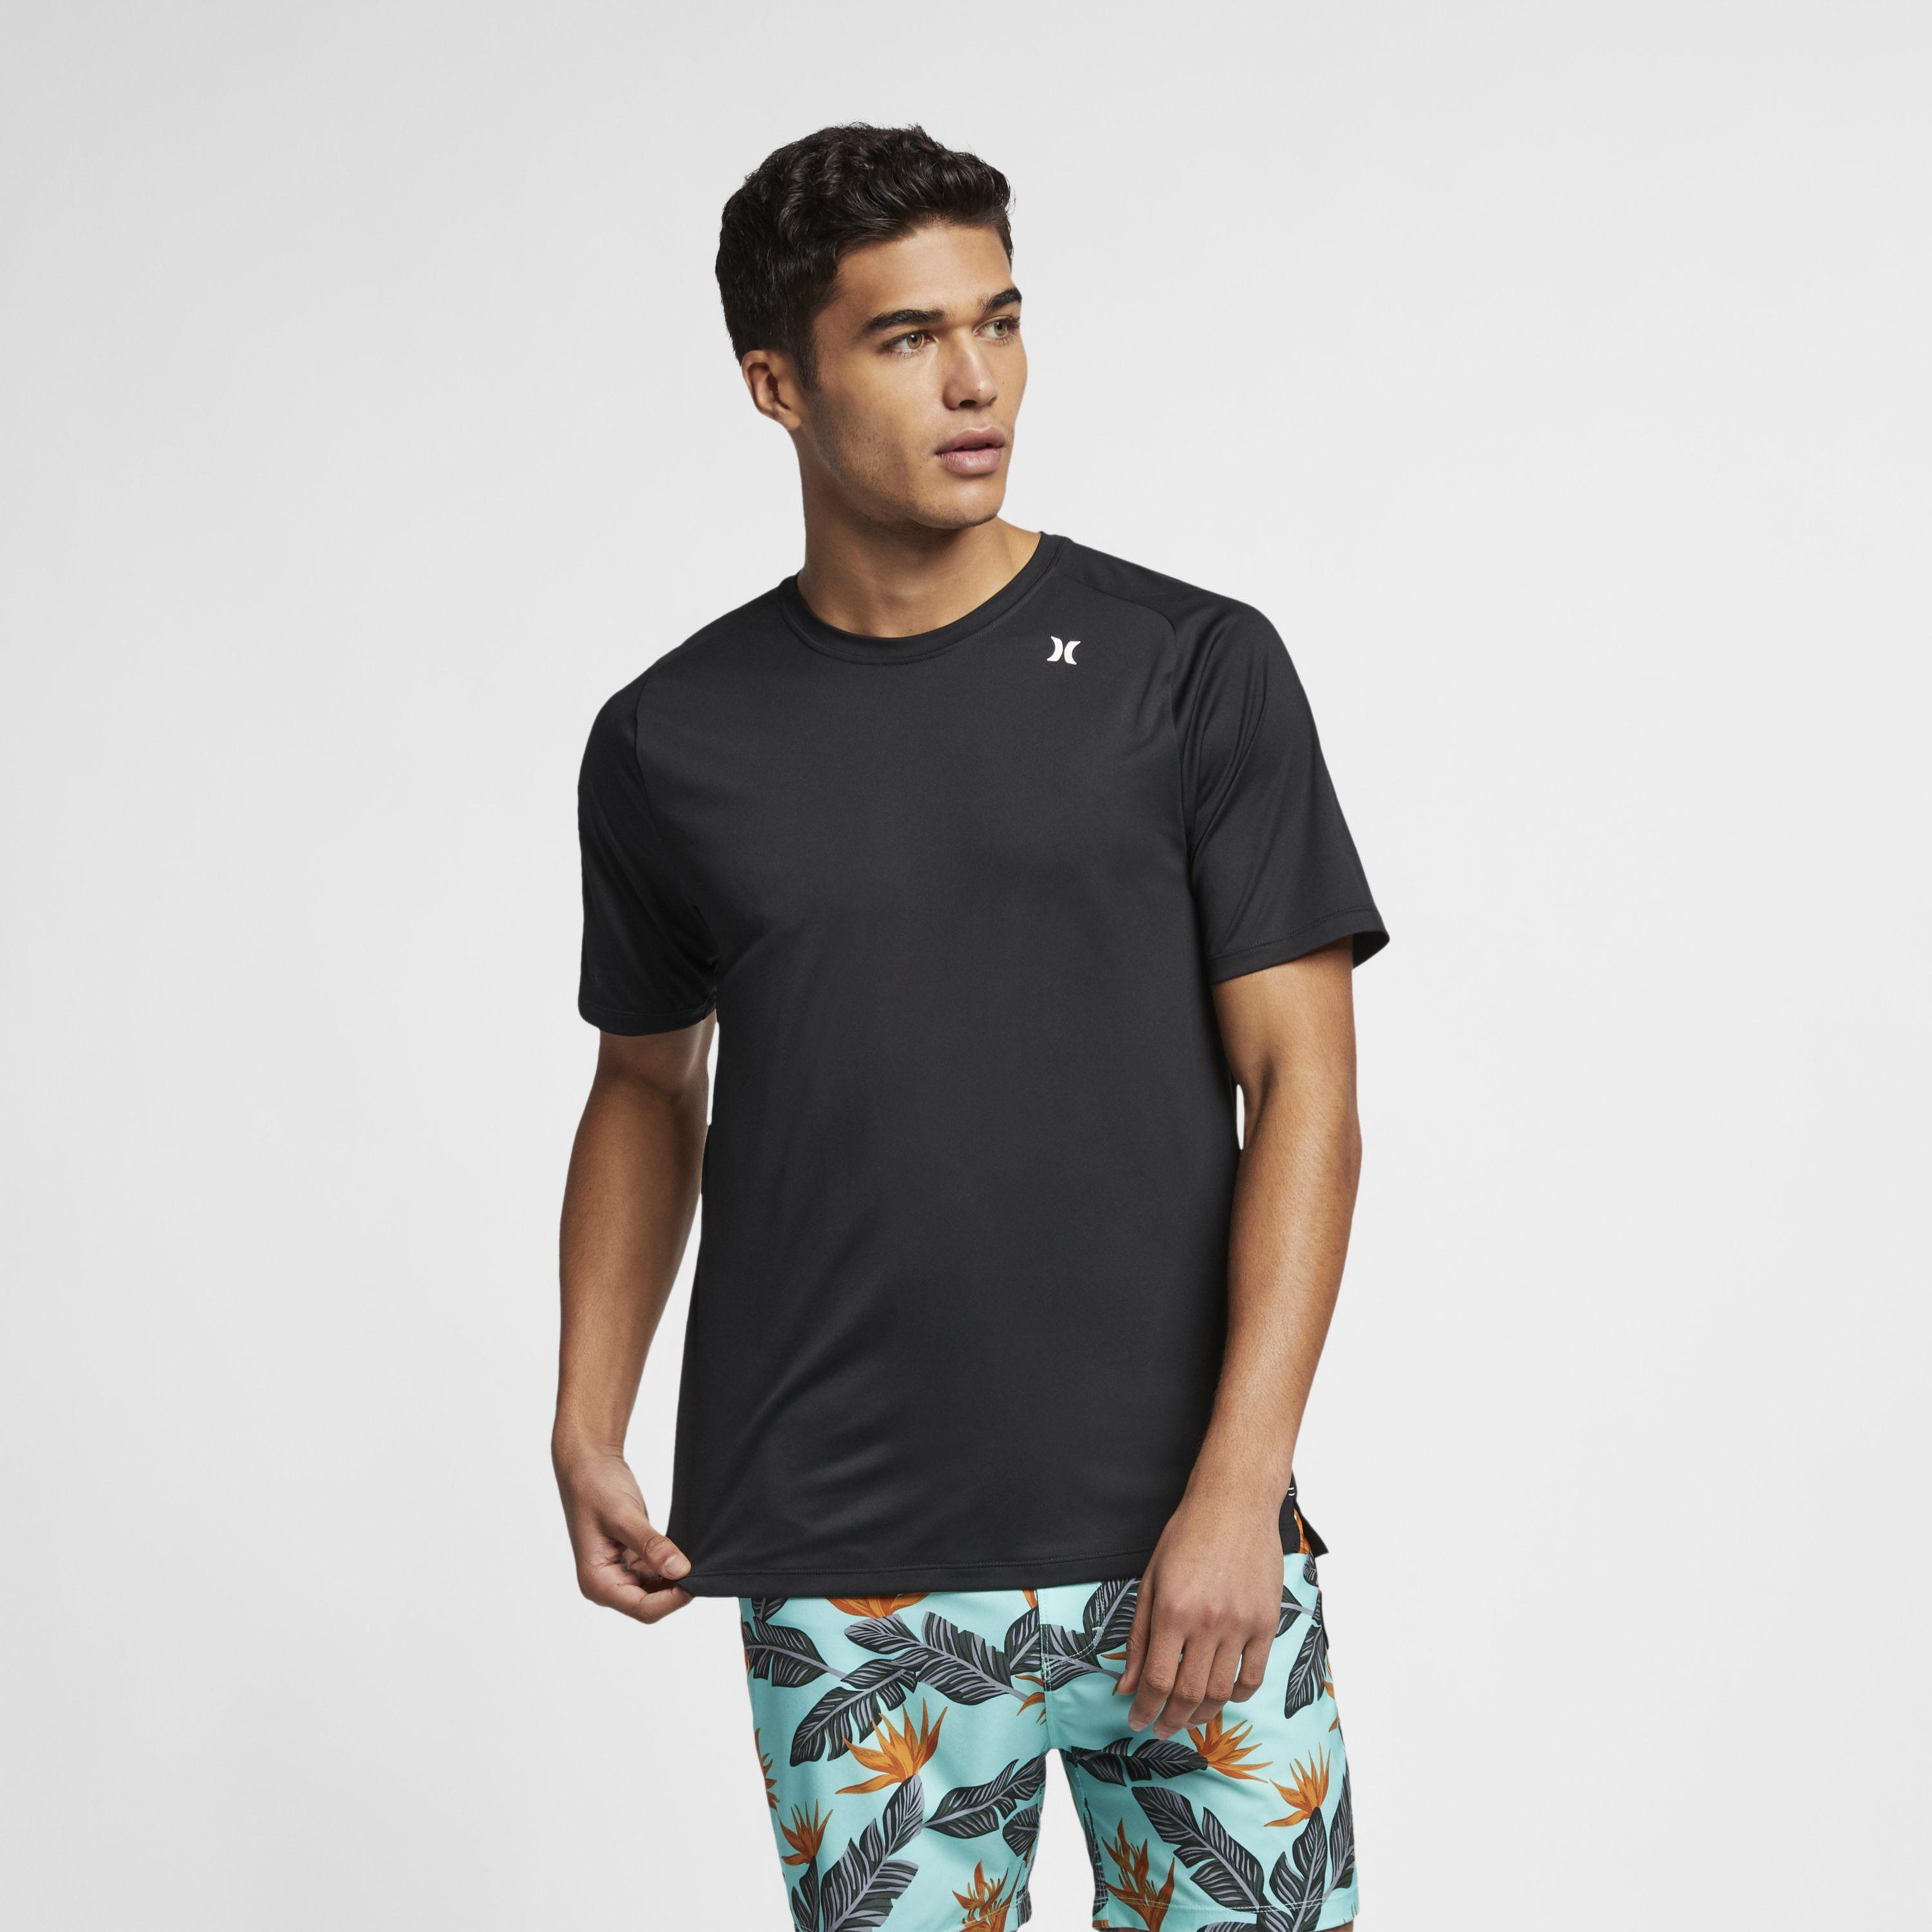 785347be Nike Hurley Quick Dry T-shirt in Black for Men - Lyst